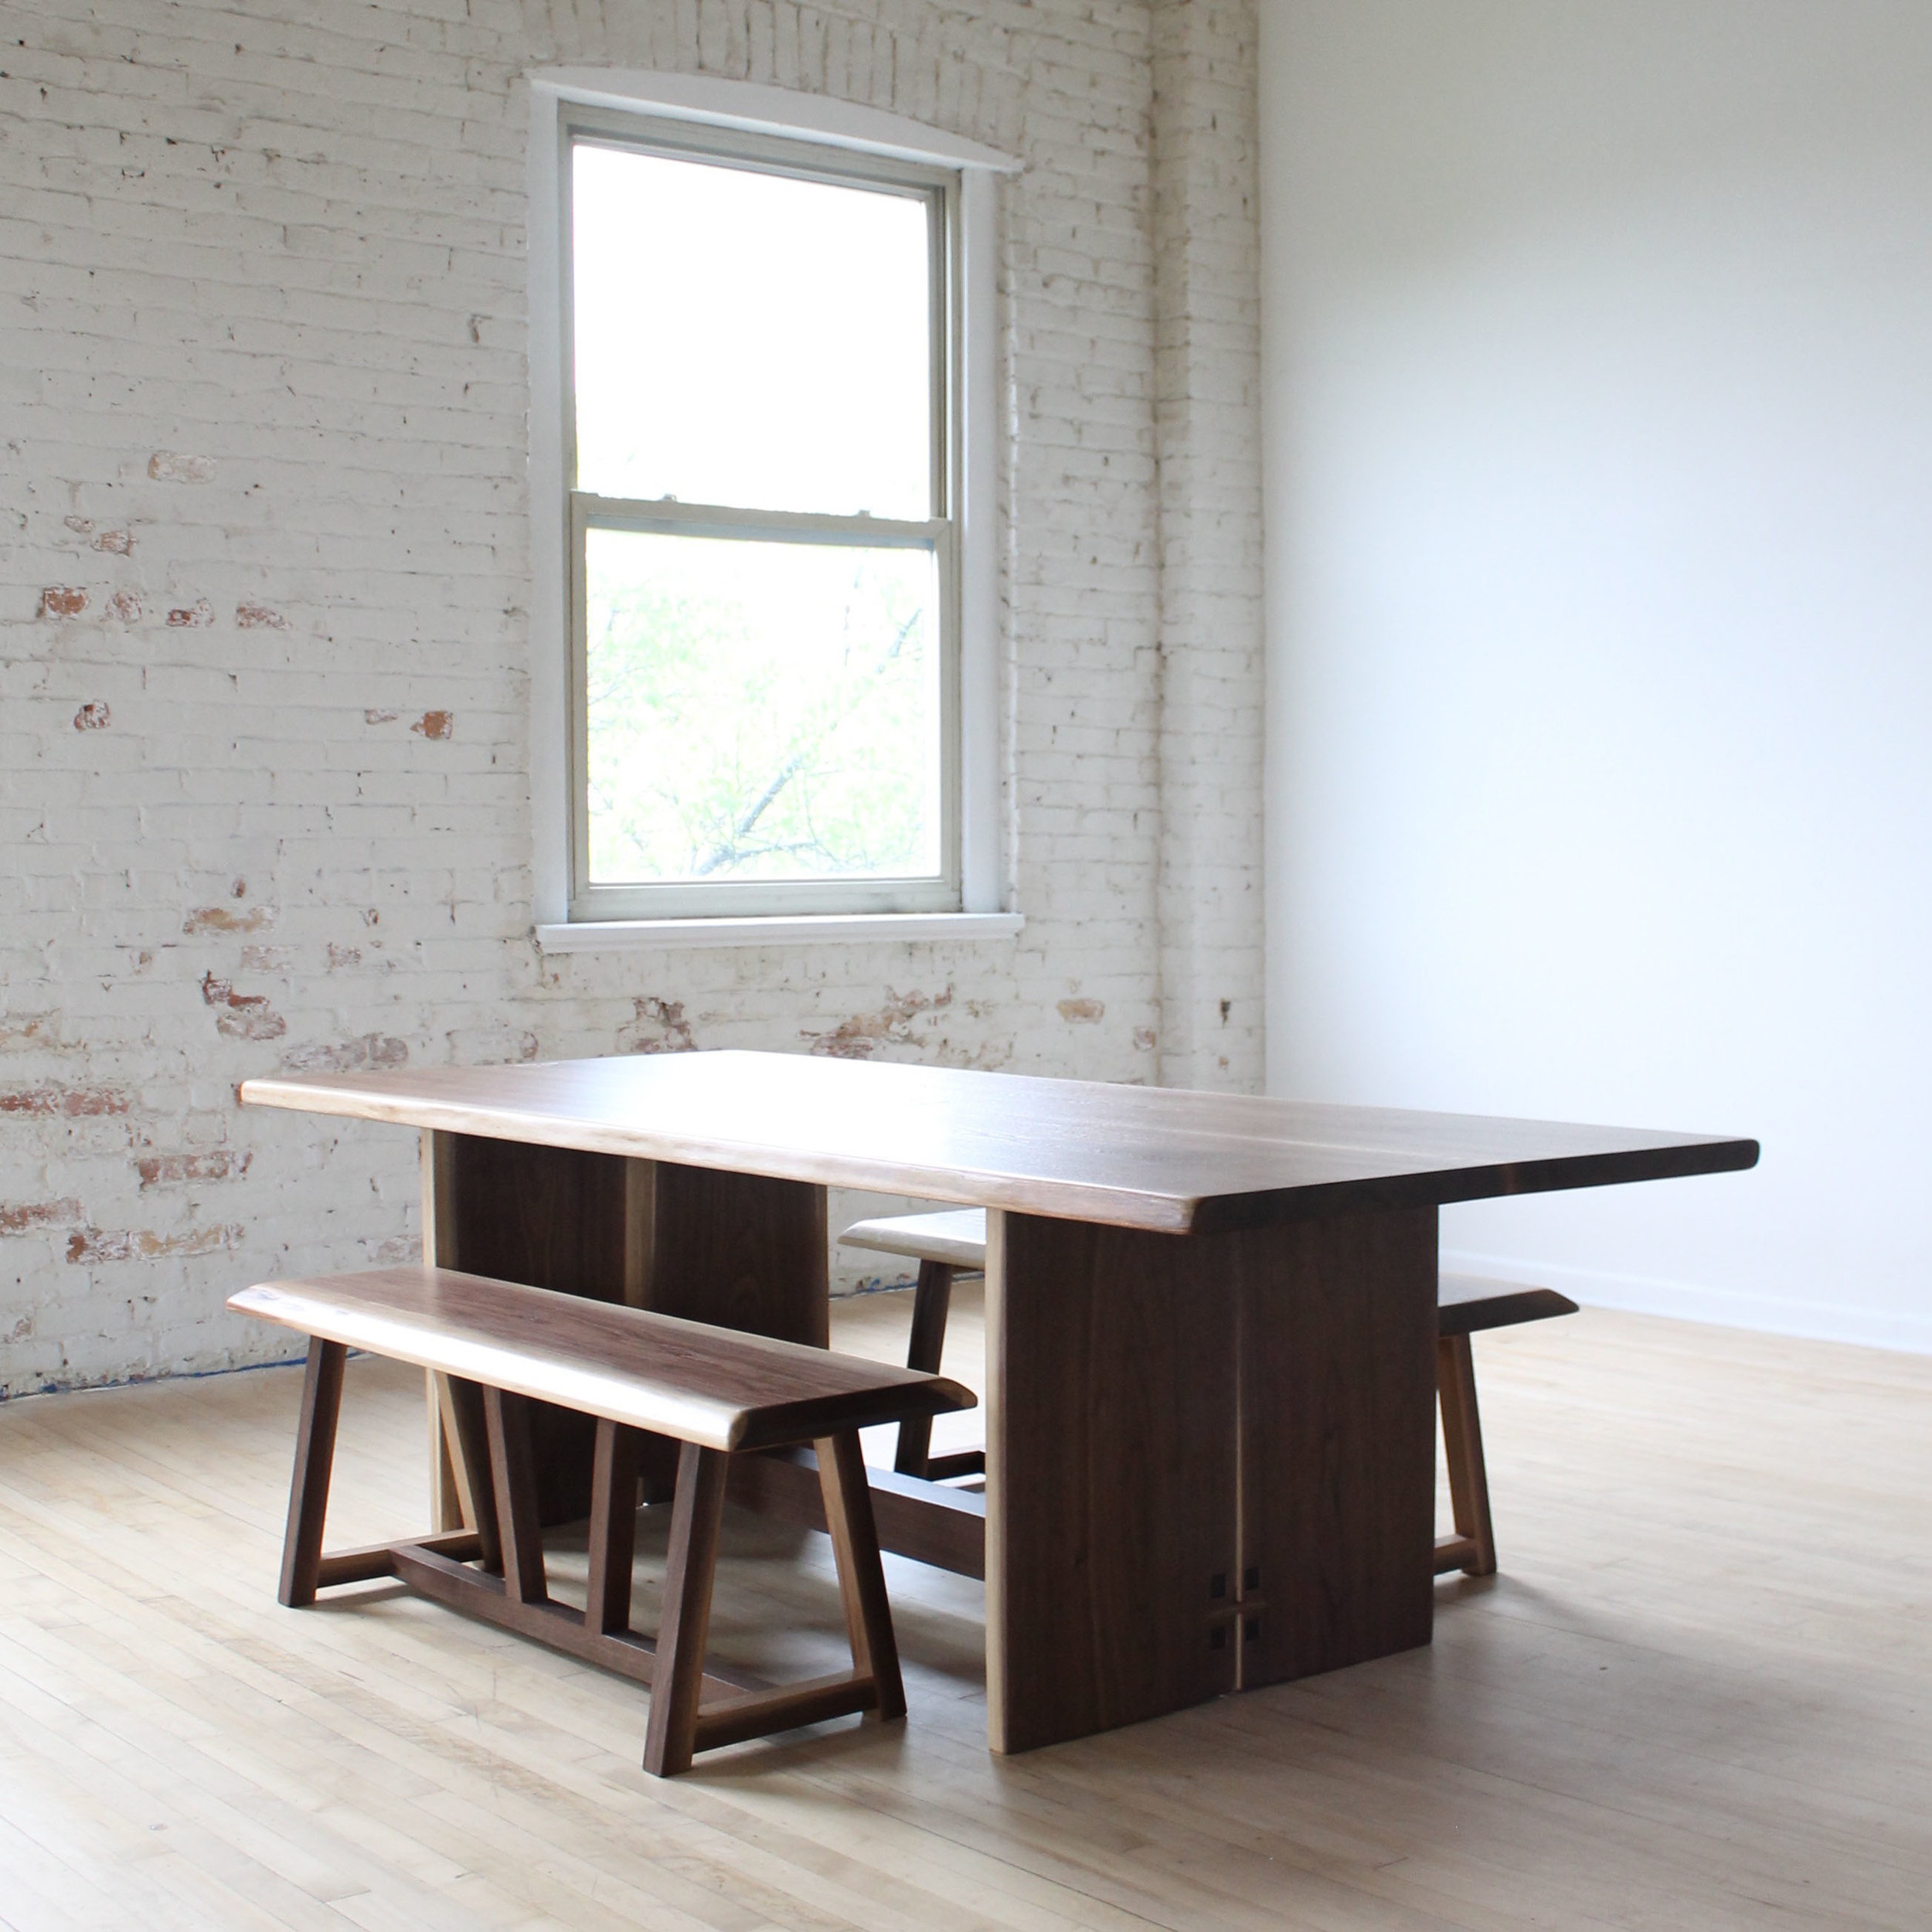 walnut table and bench.jpg